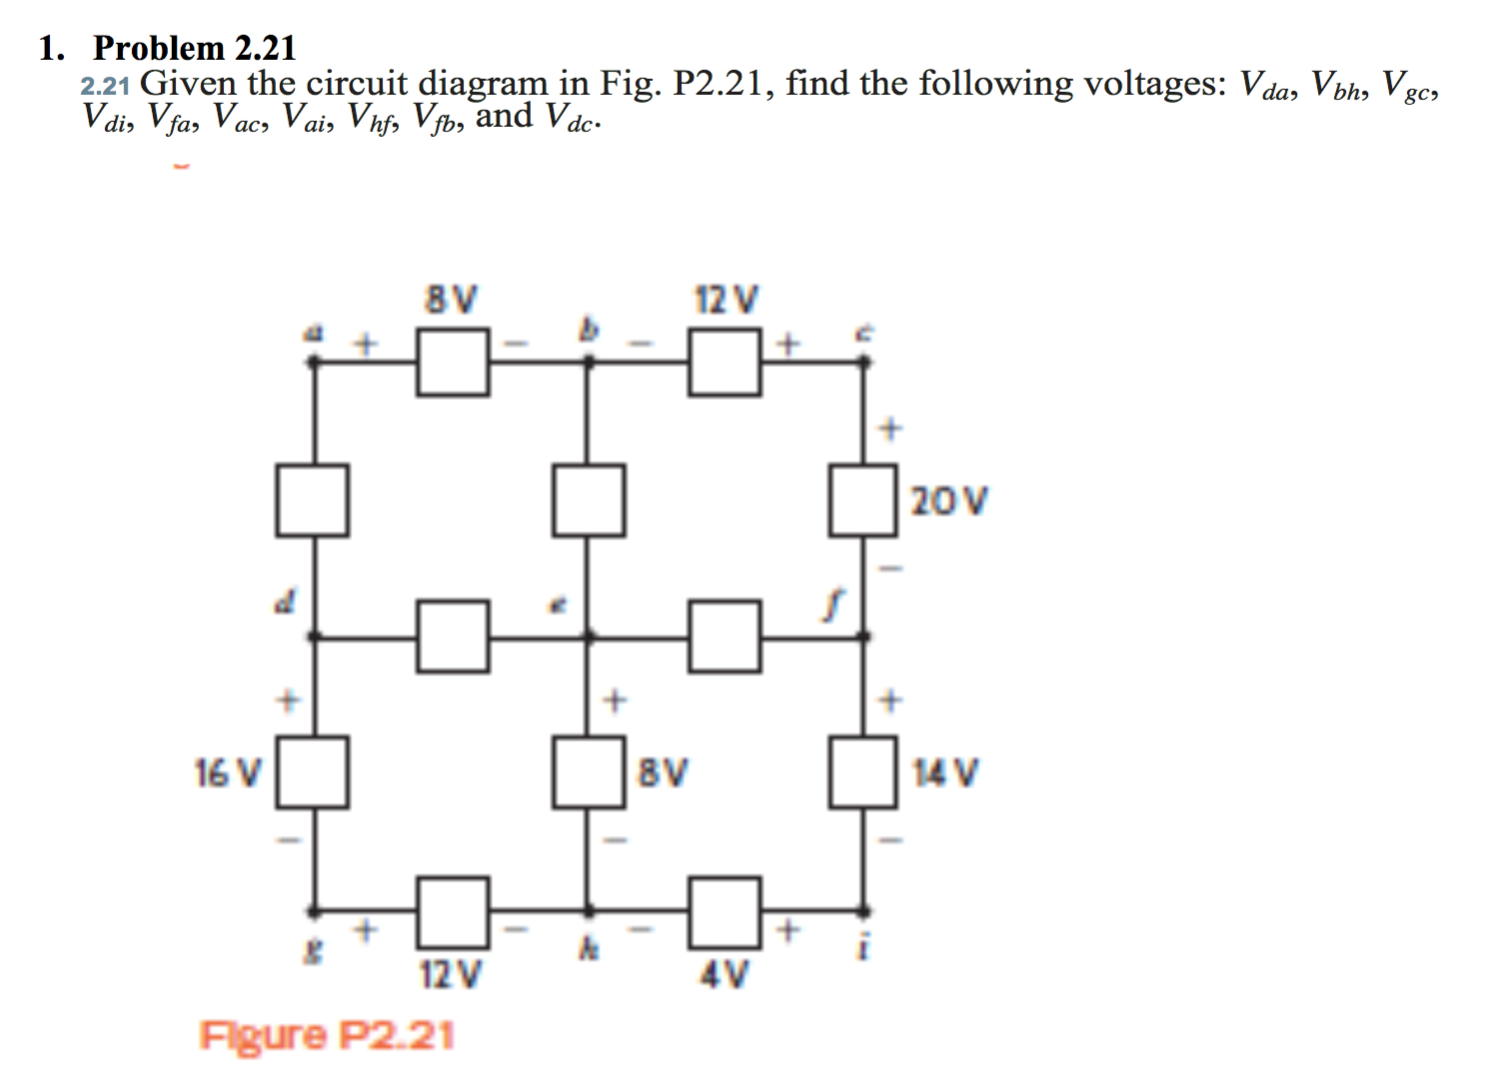 electrical engineering archive 06 2016 chegg com given the circuit diagram in fig p2 21 the following voltages v da v bh v gc v di v fa v ac v ai v hf v fb and v dc